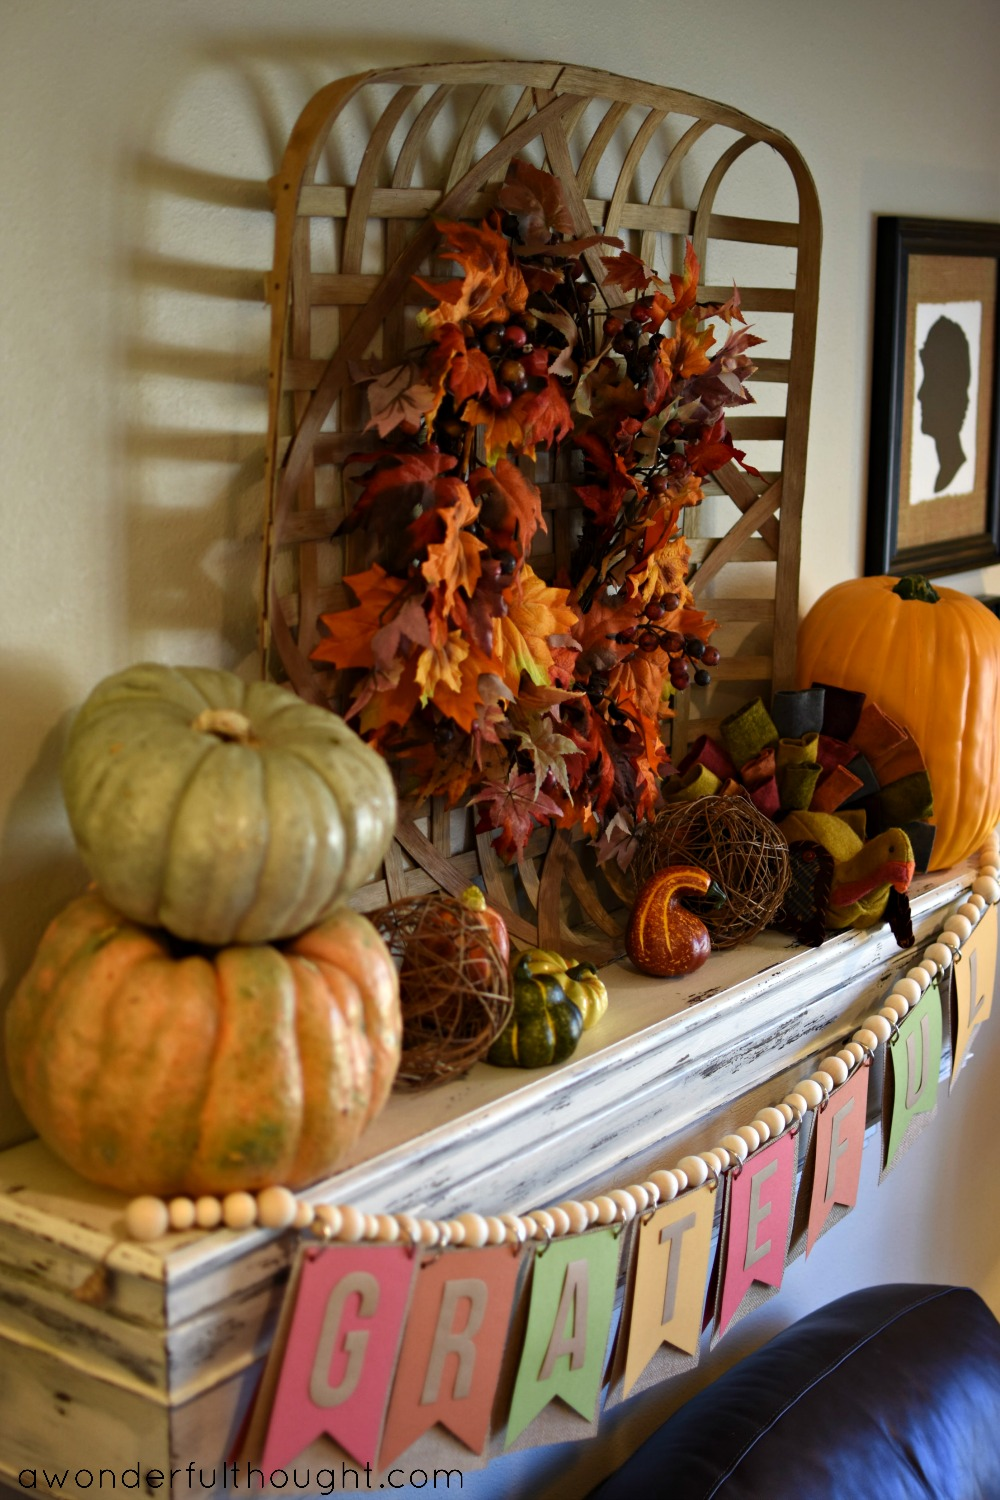 A Wonderful Thought | Thanksgiving Mantel | awonderfulthought.com